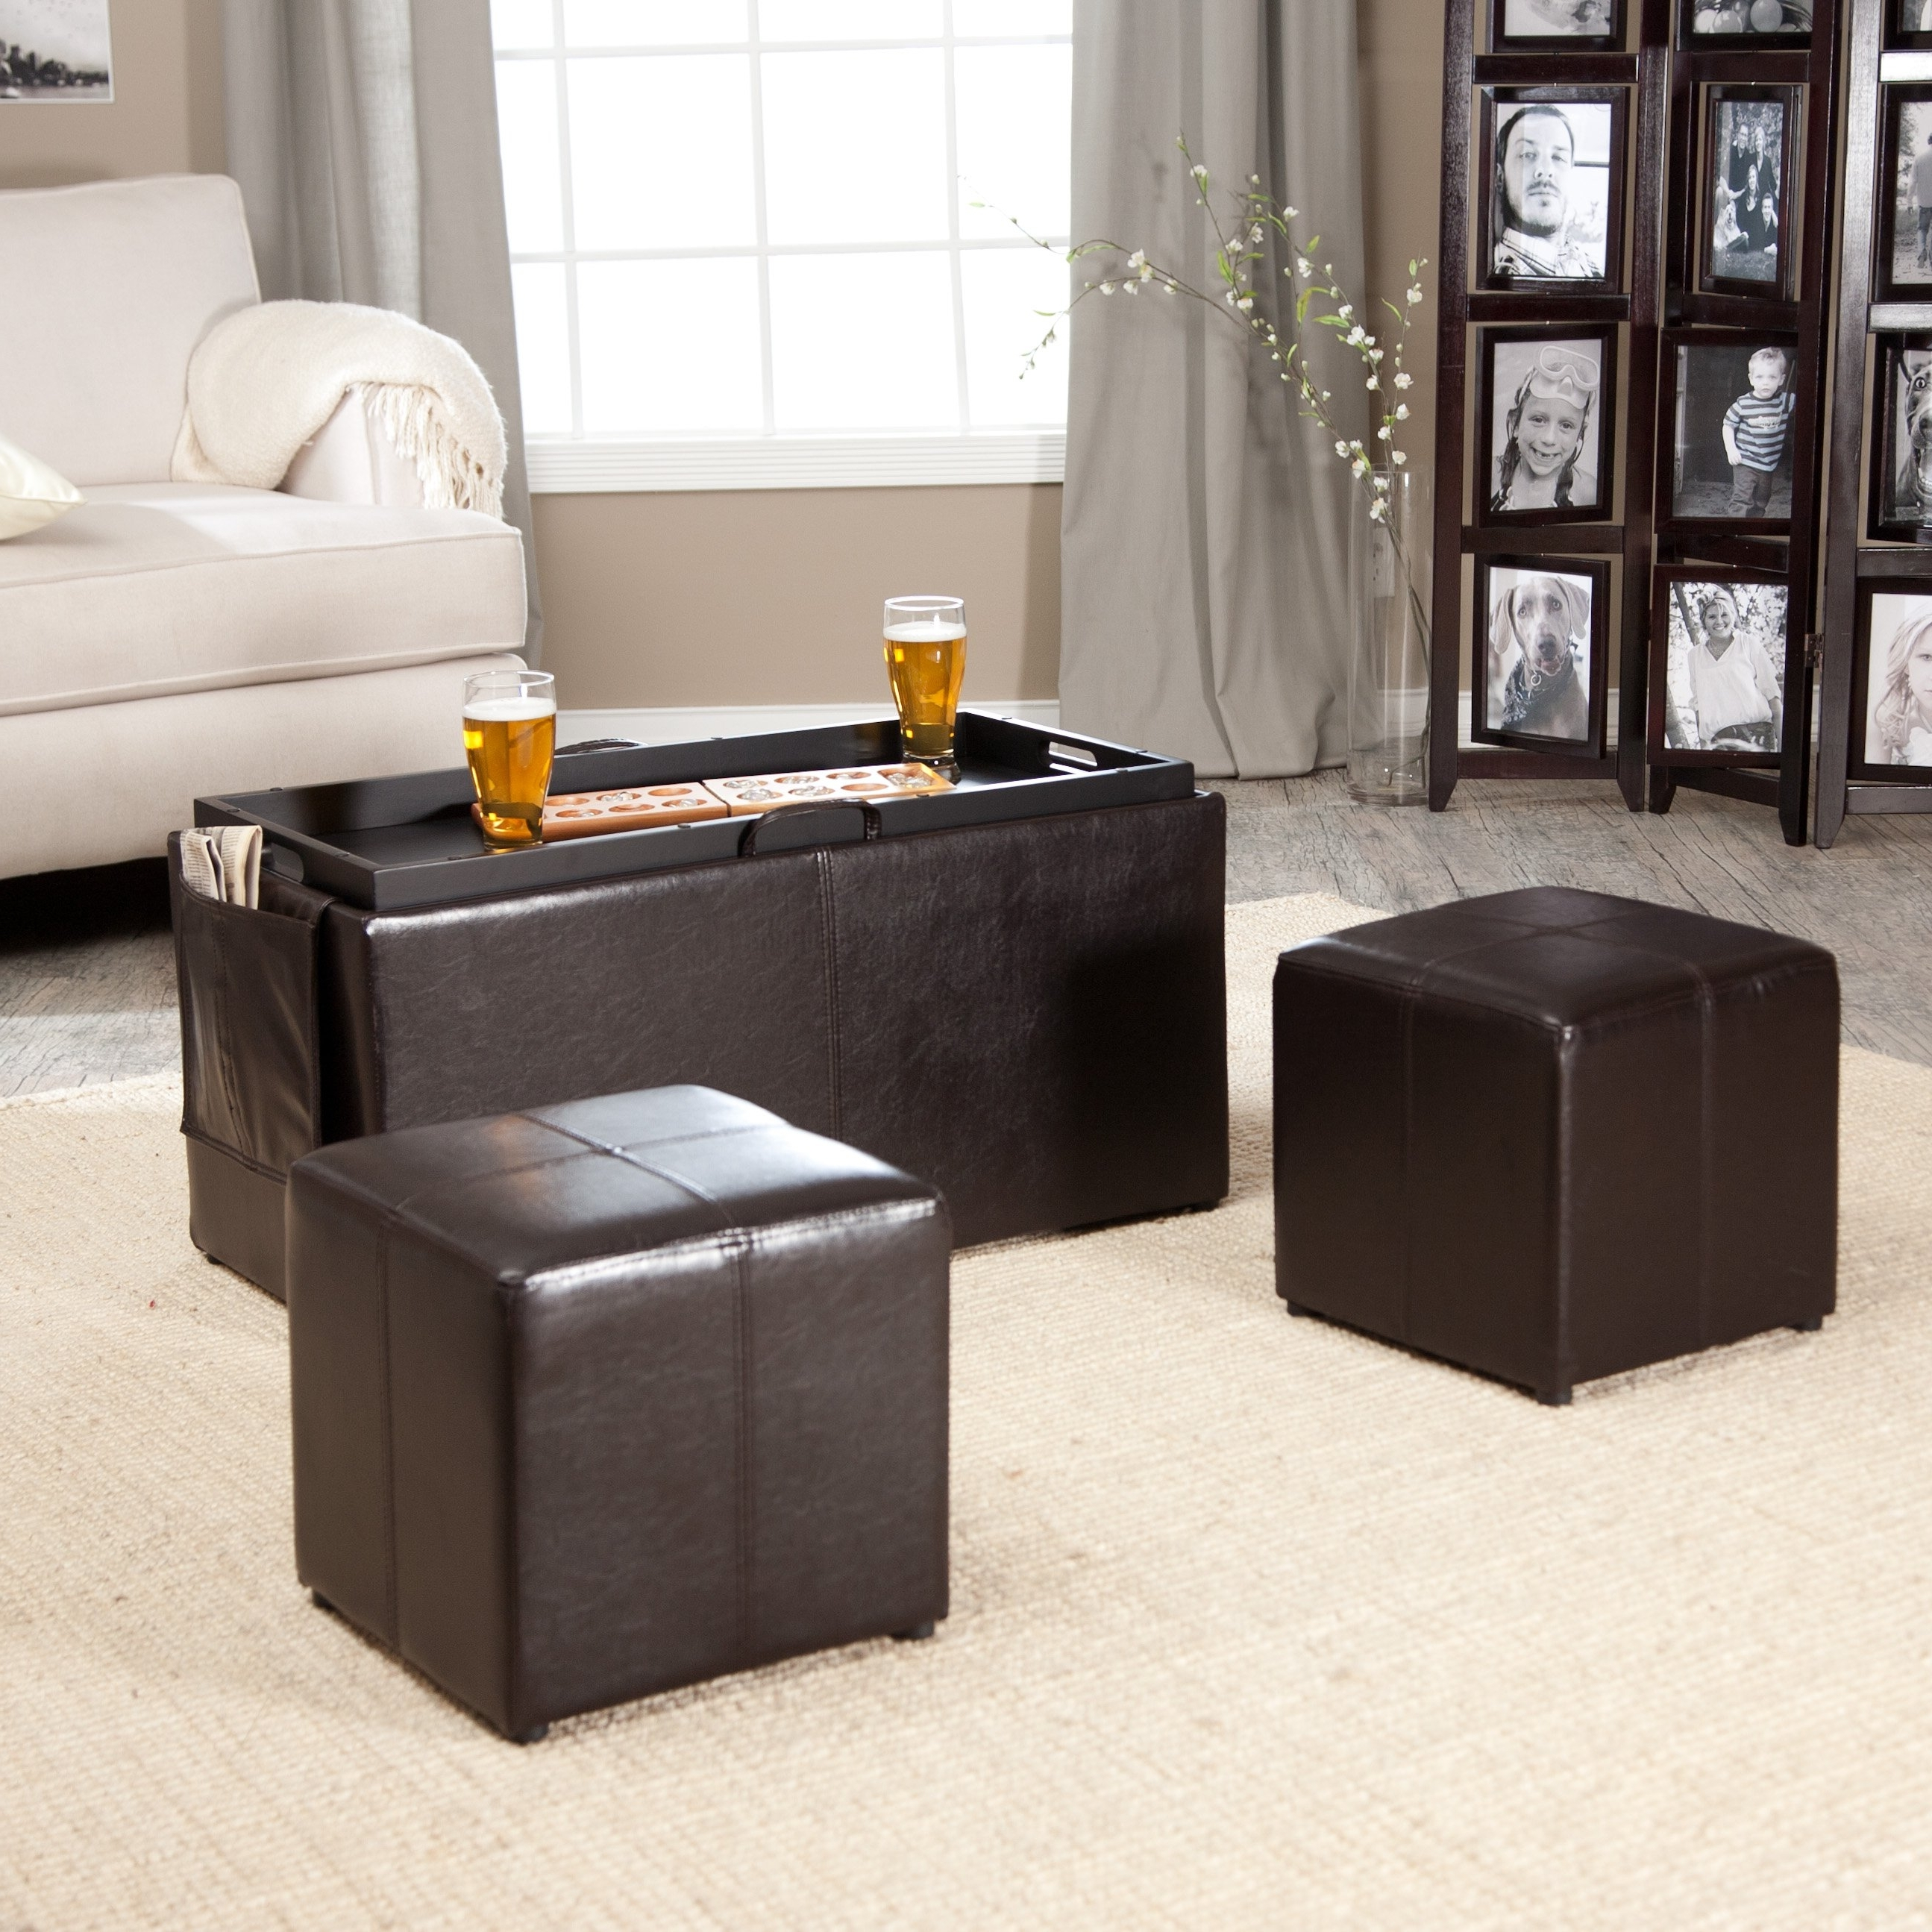 Famous Ottomans With Tray Pertaining To Hartley Coffee Table Storage Ottoman With Tray – Side Ottomans (View 6 of 15)